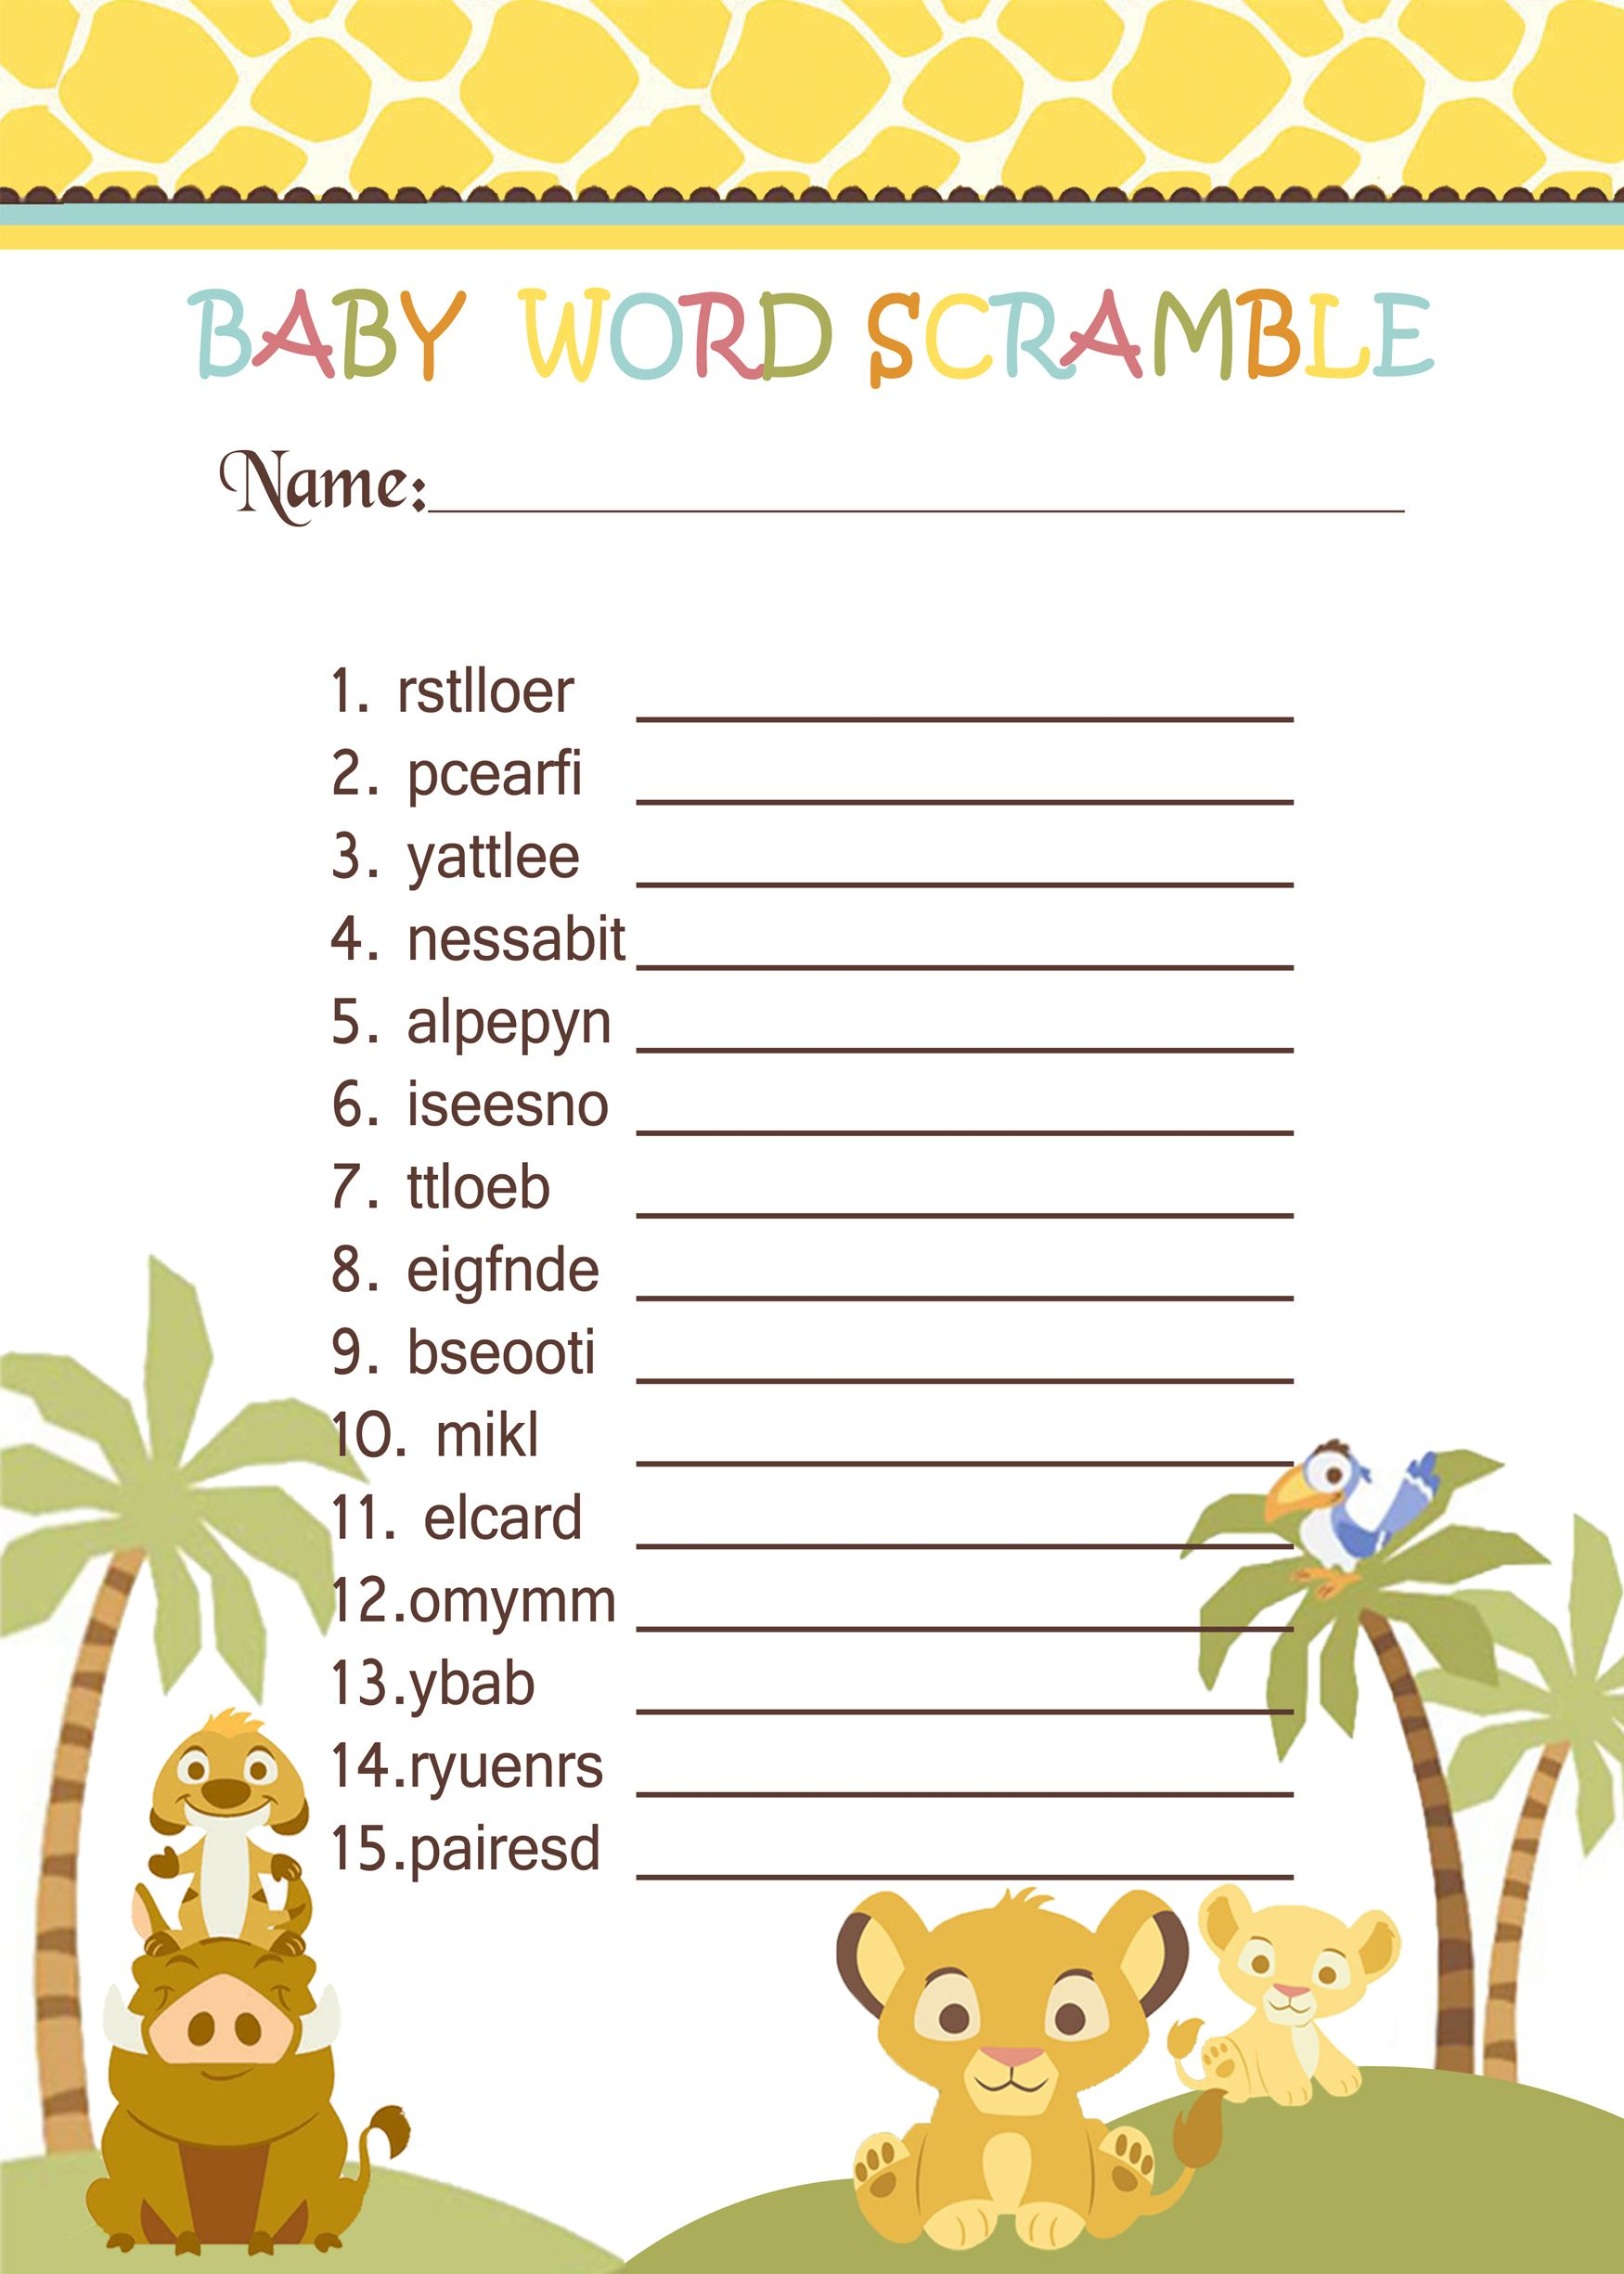 Simba Lion King Baby Shower Games - Word Scramble $3.99 | Baby ...